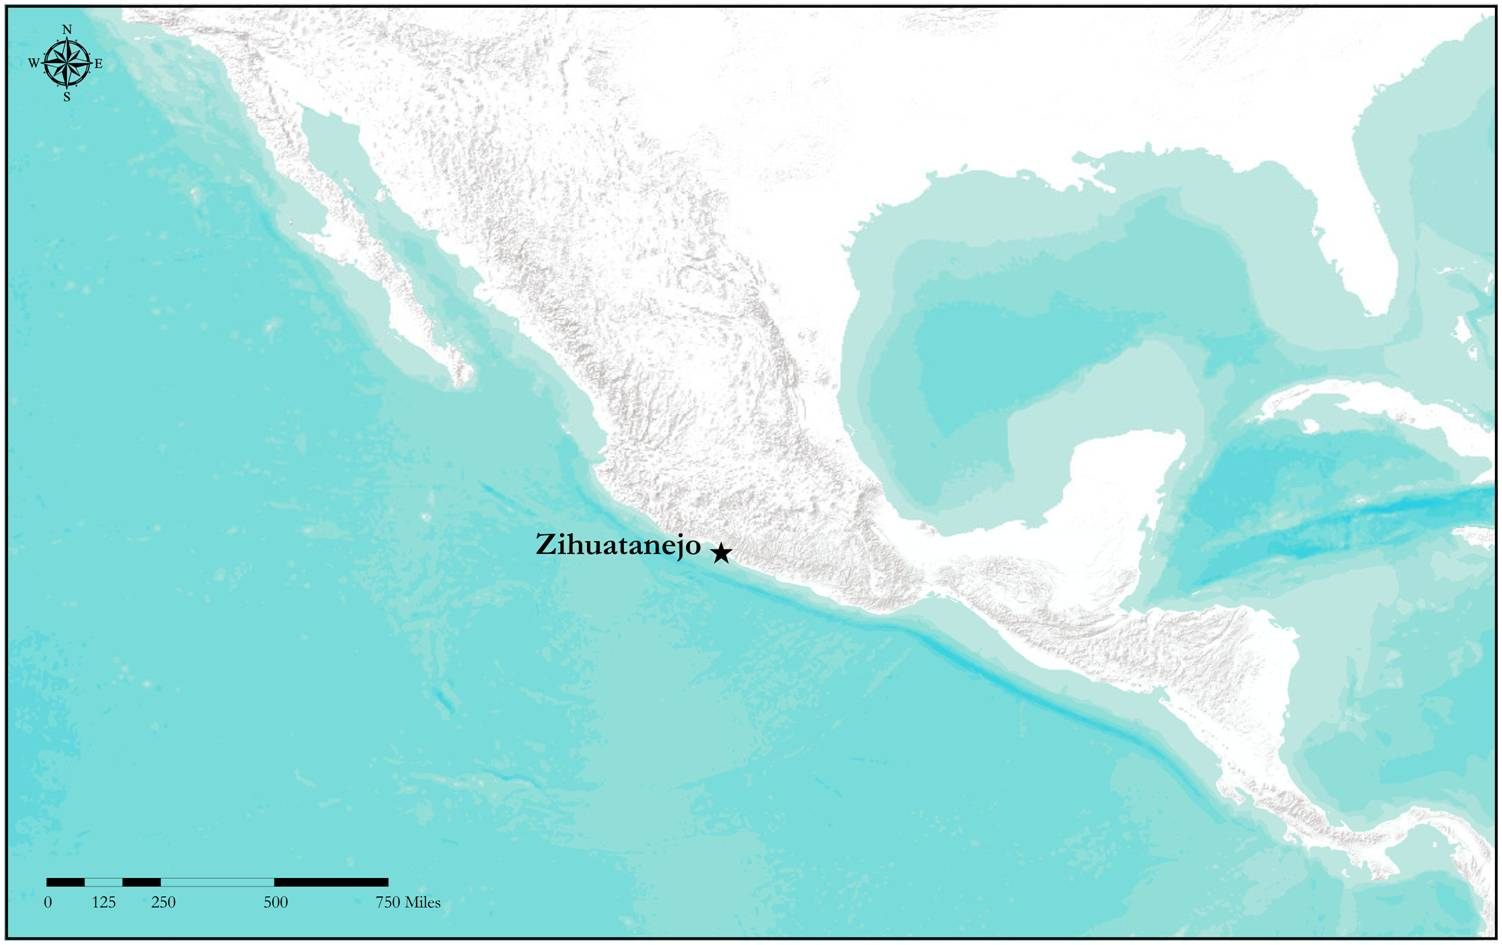 A Map to Zihuatanejo